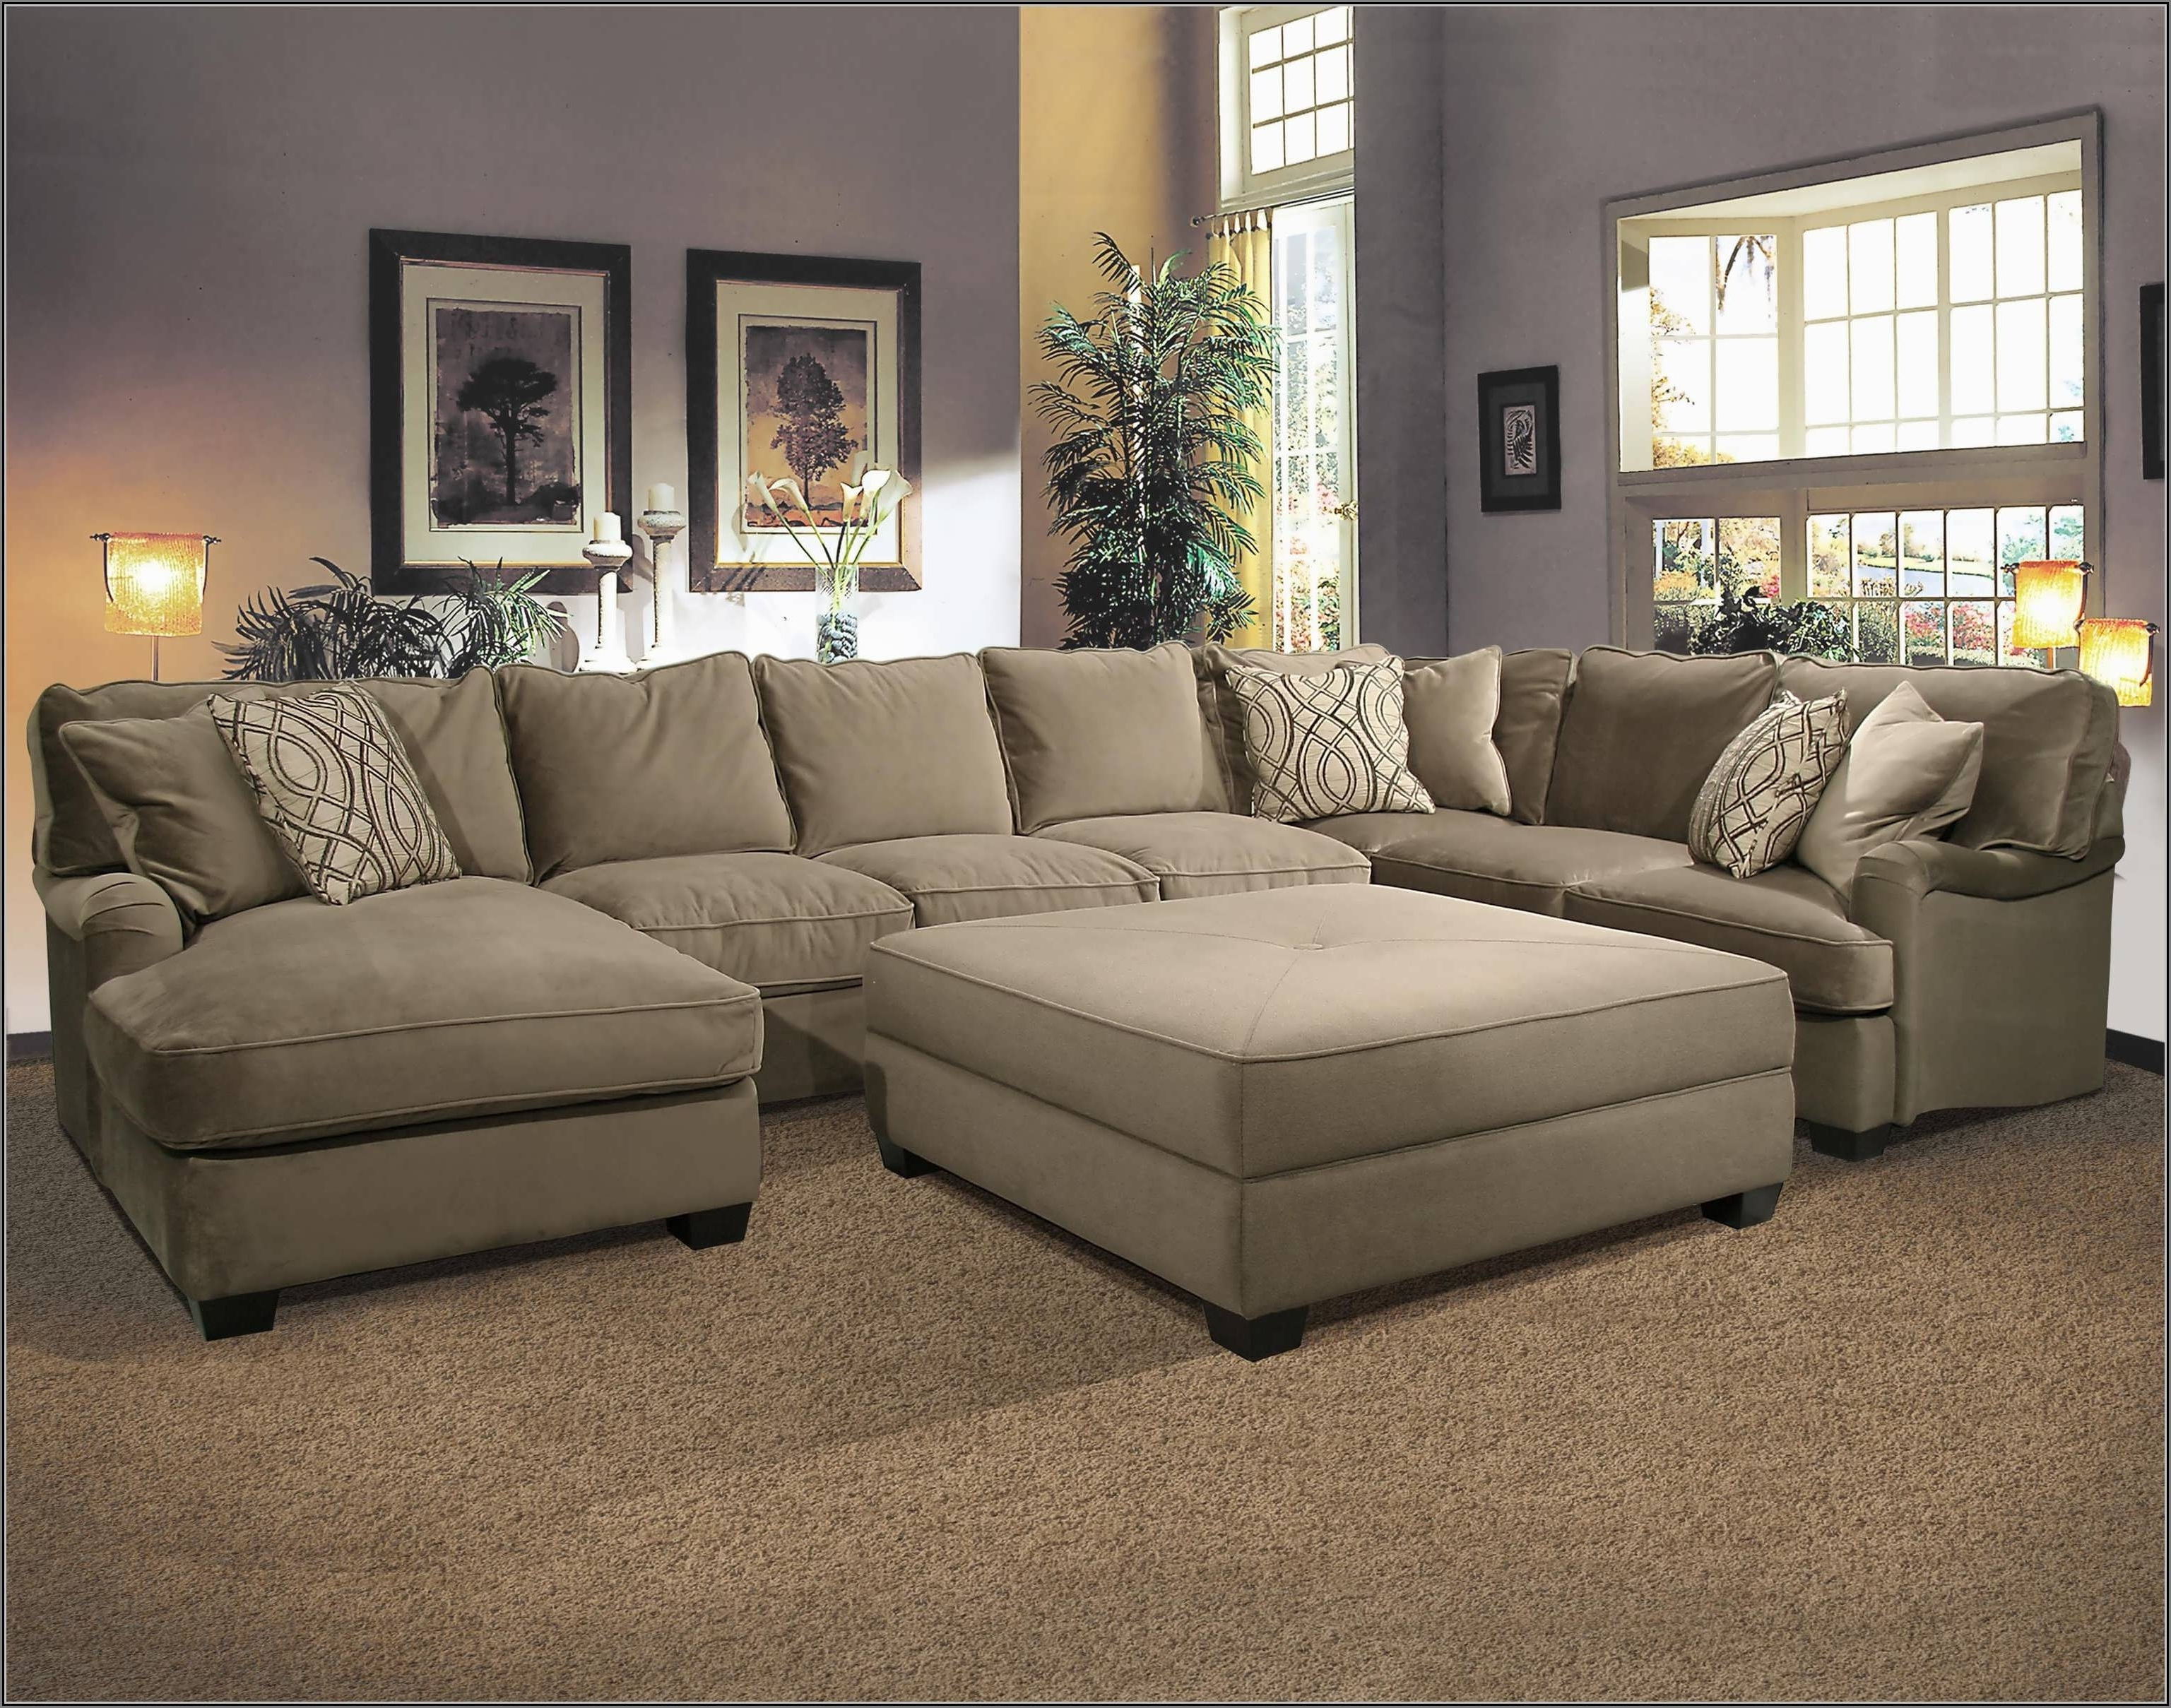 Livingroom : Small Sectional Living Room Sets Sofa Set Designs For With Current Sectional Sofas In Philippines (View 17 of 20)